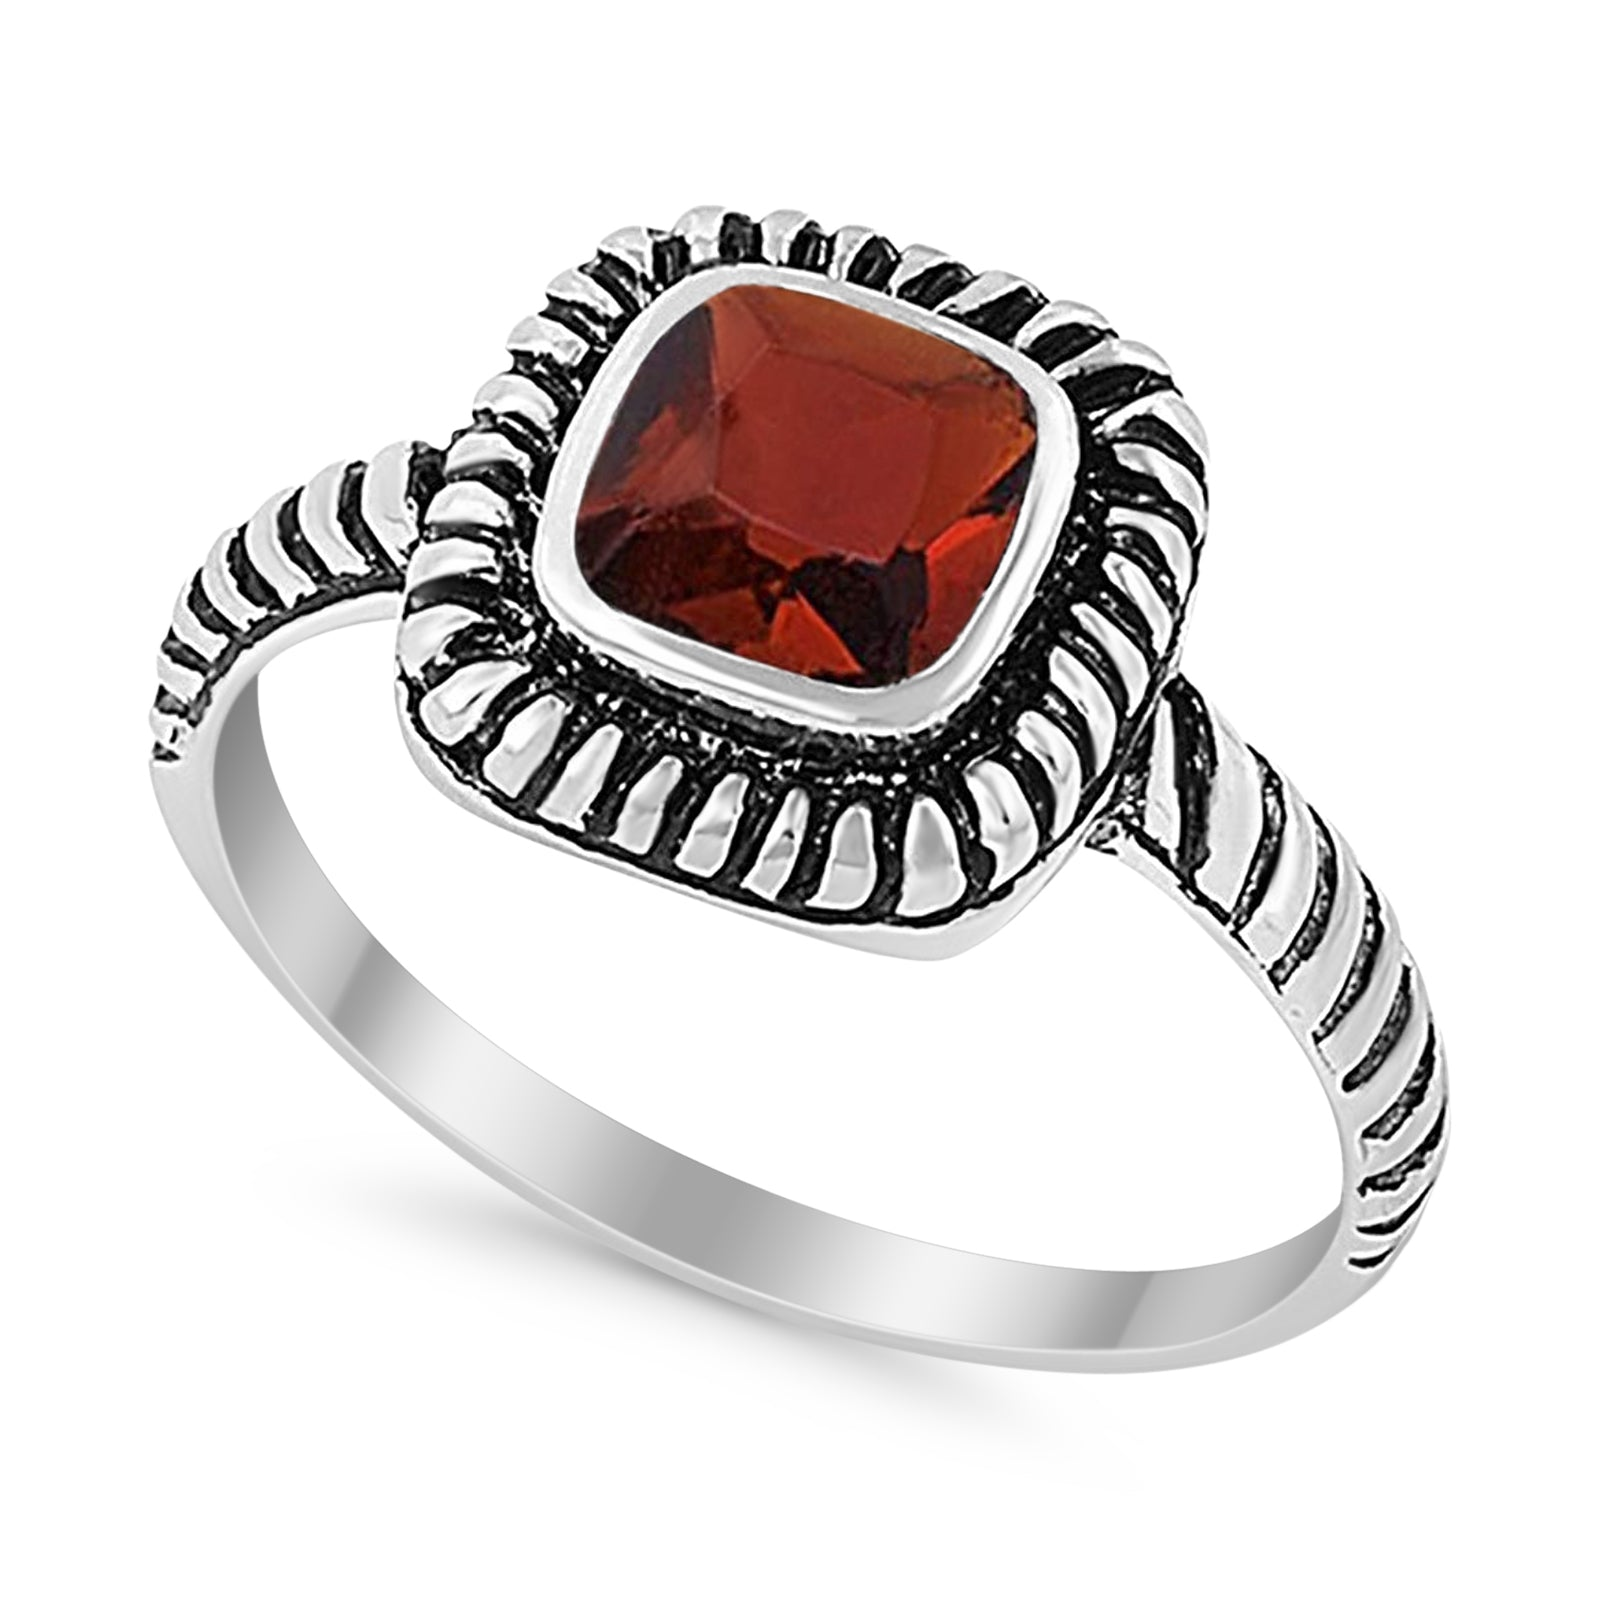 Princess Cut Simulated Red Garnet Cubic Zirconia Oxidized Design Ring 925 Sterling Silver